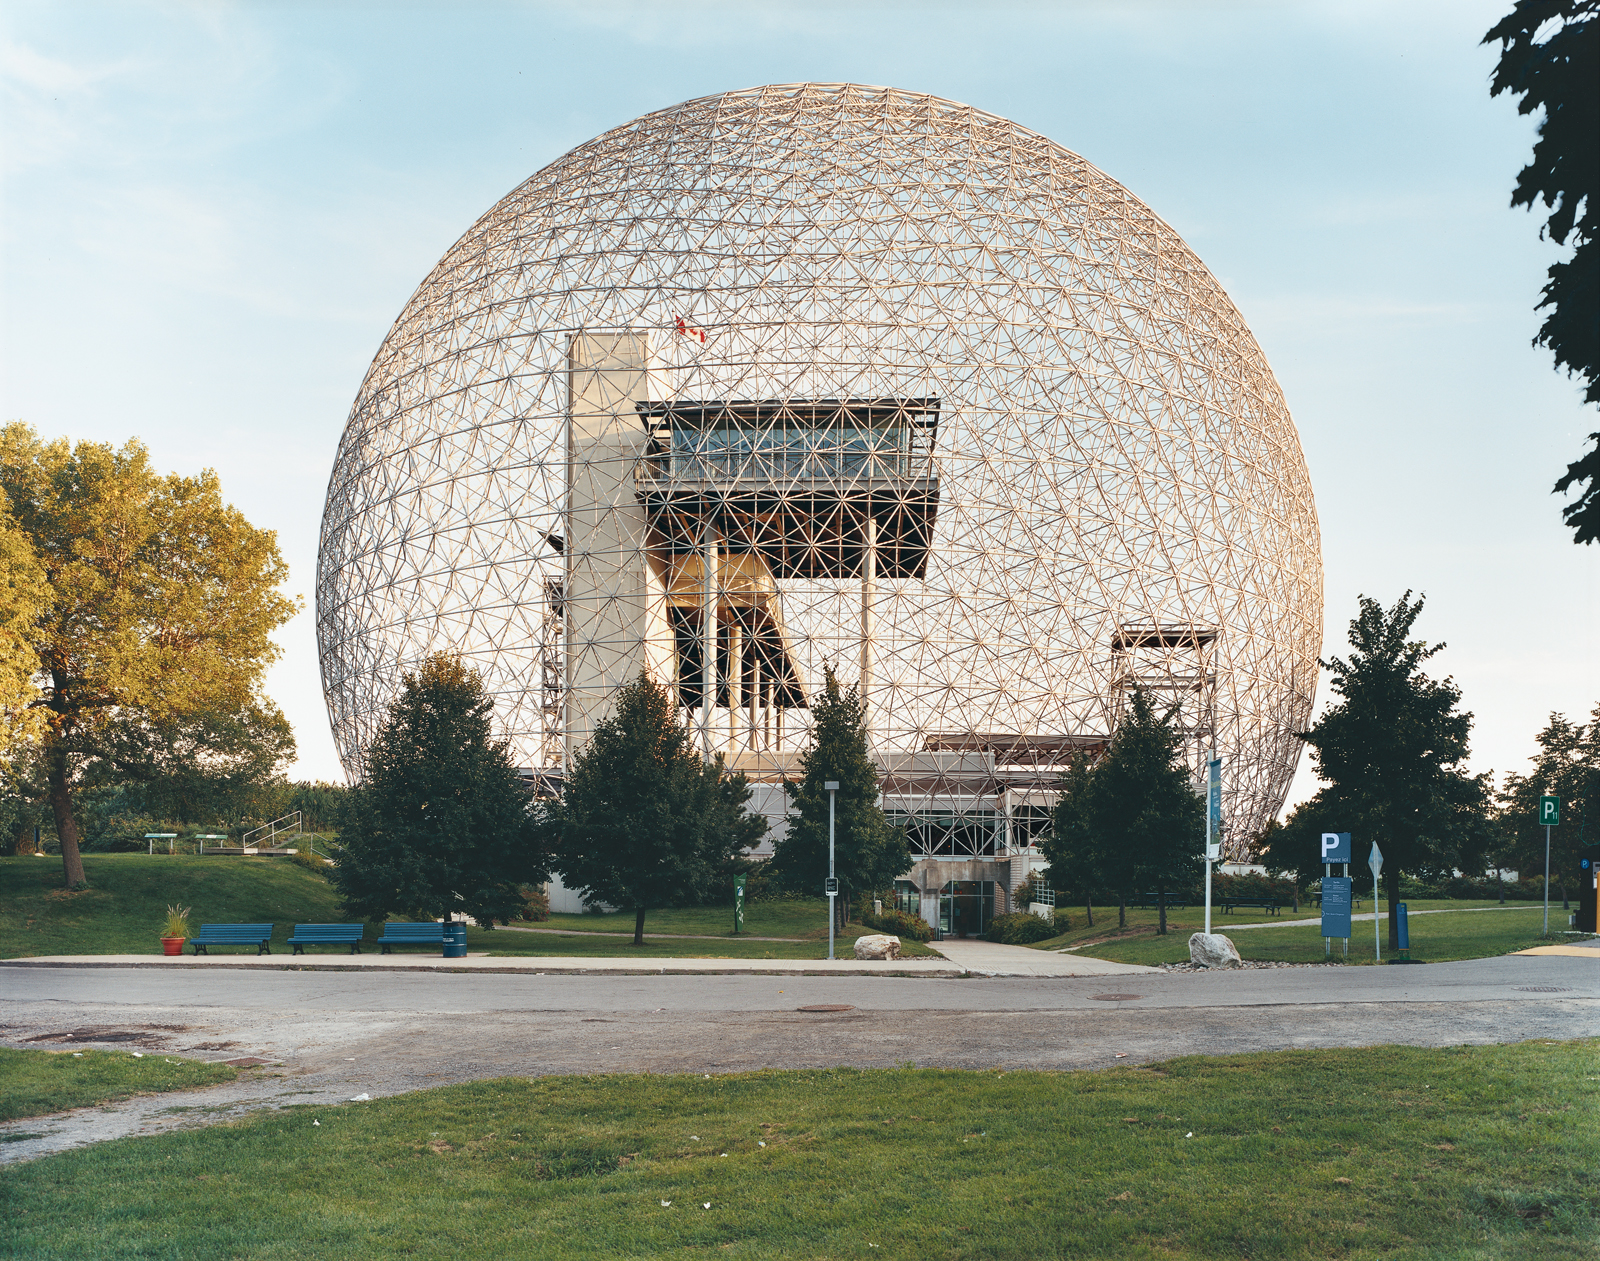 Biosphere in Montreal, Canada